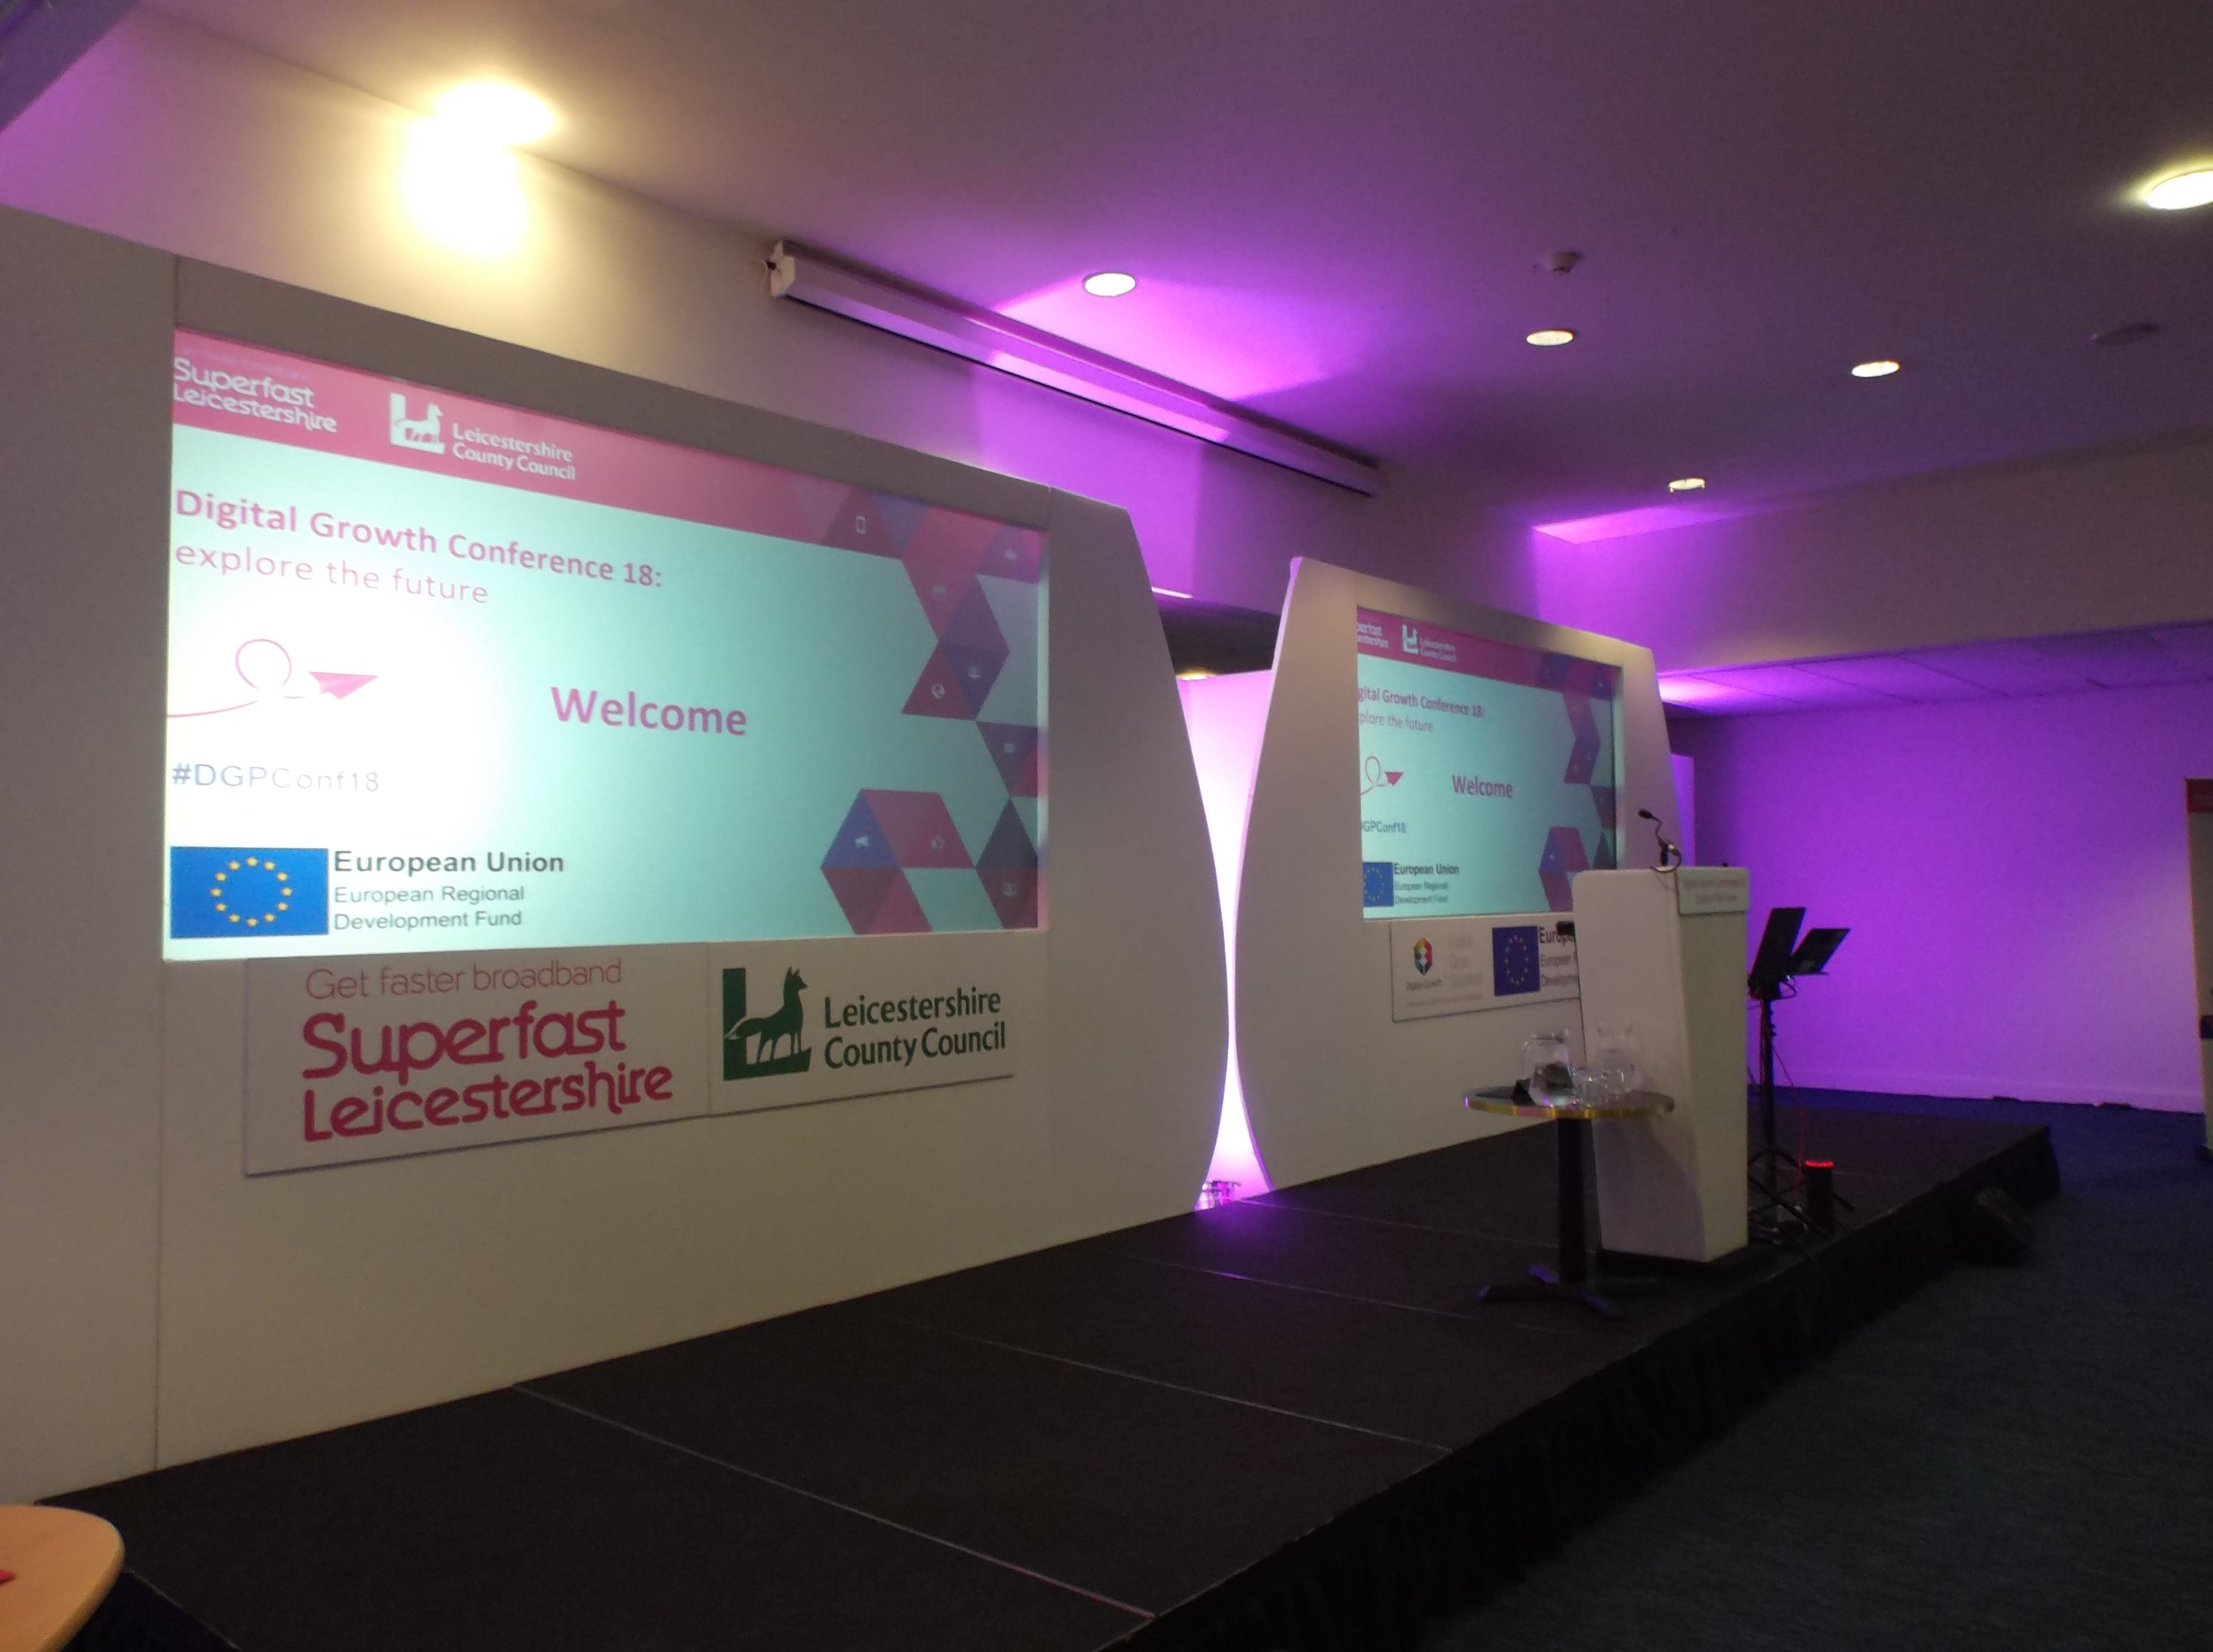 Digtal Growth Conference stage at King Power Stadium